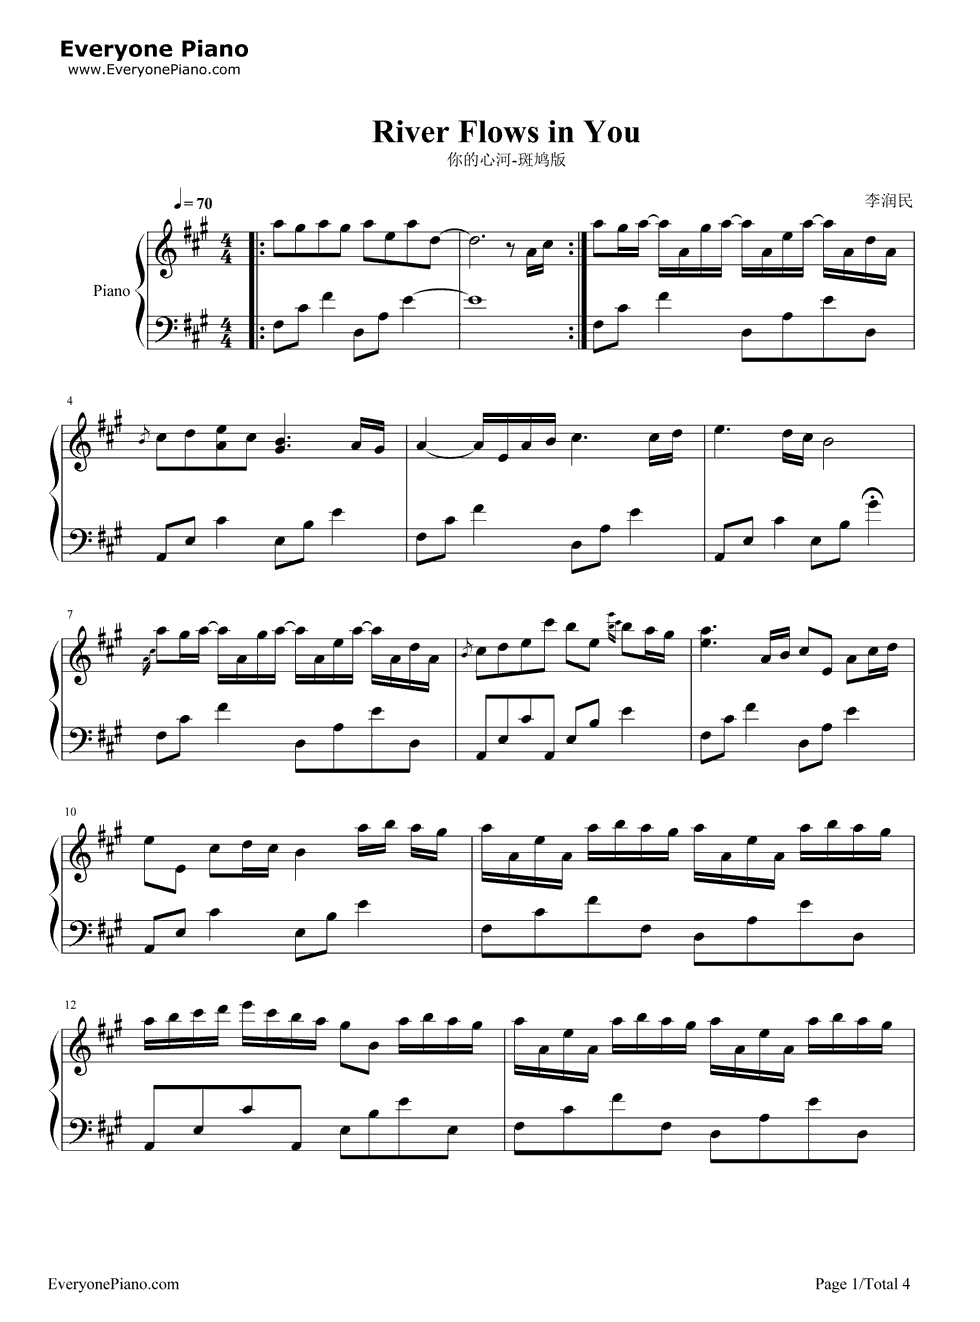 river flows in you violin sheet music pdf